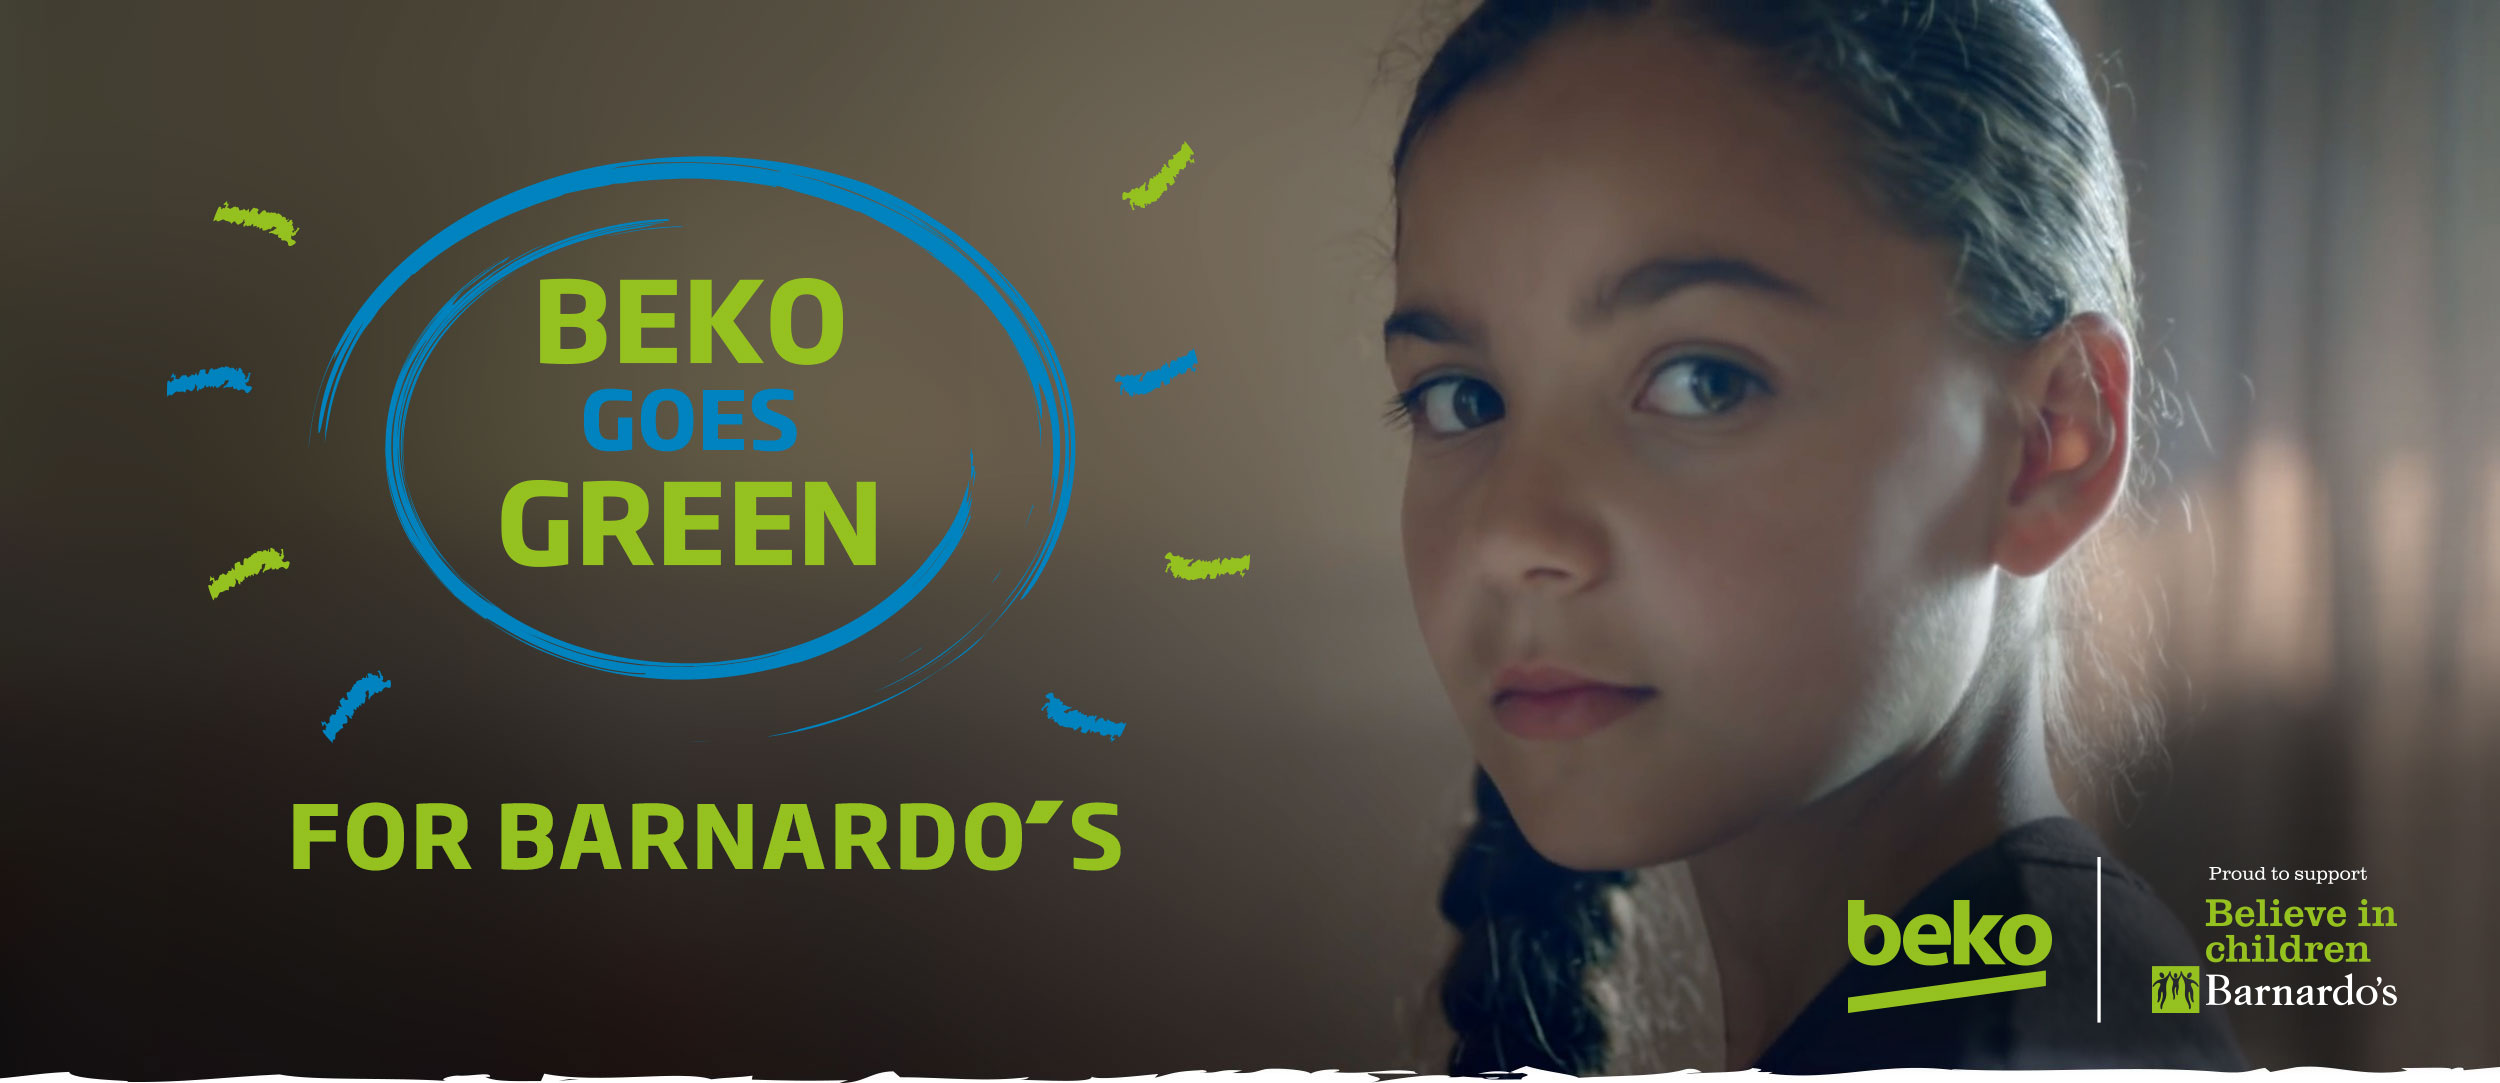 Beko Goes Green For Barnardos